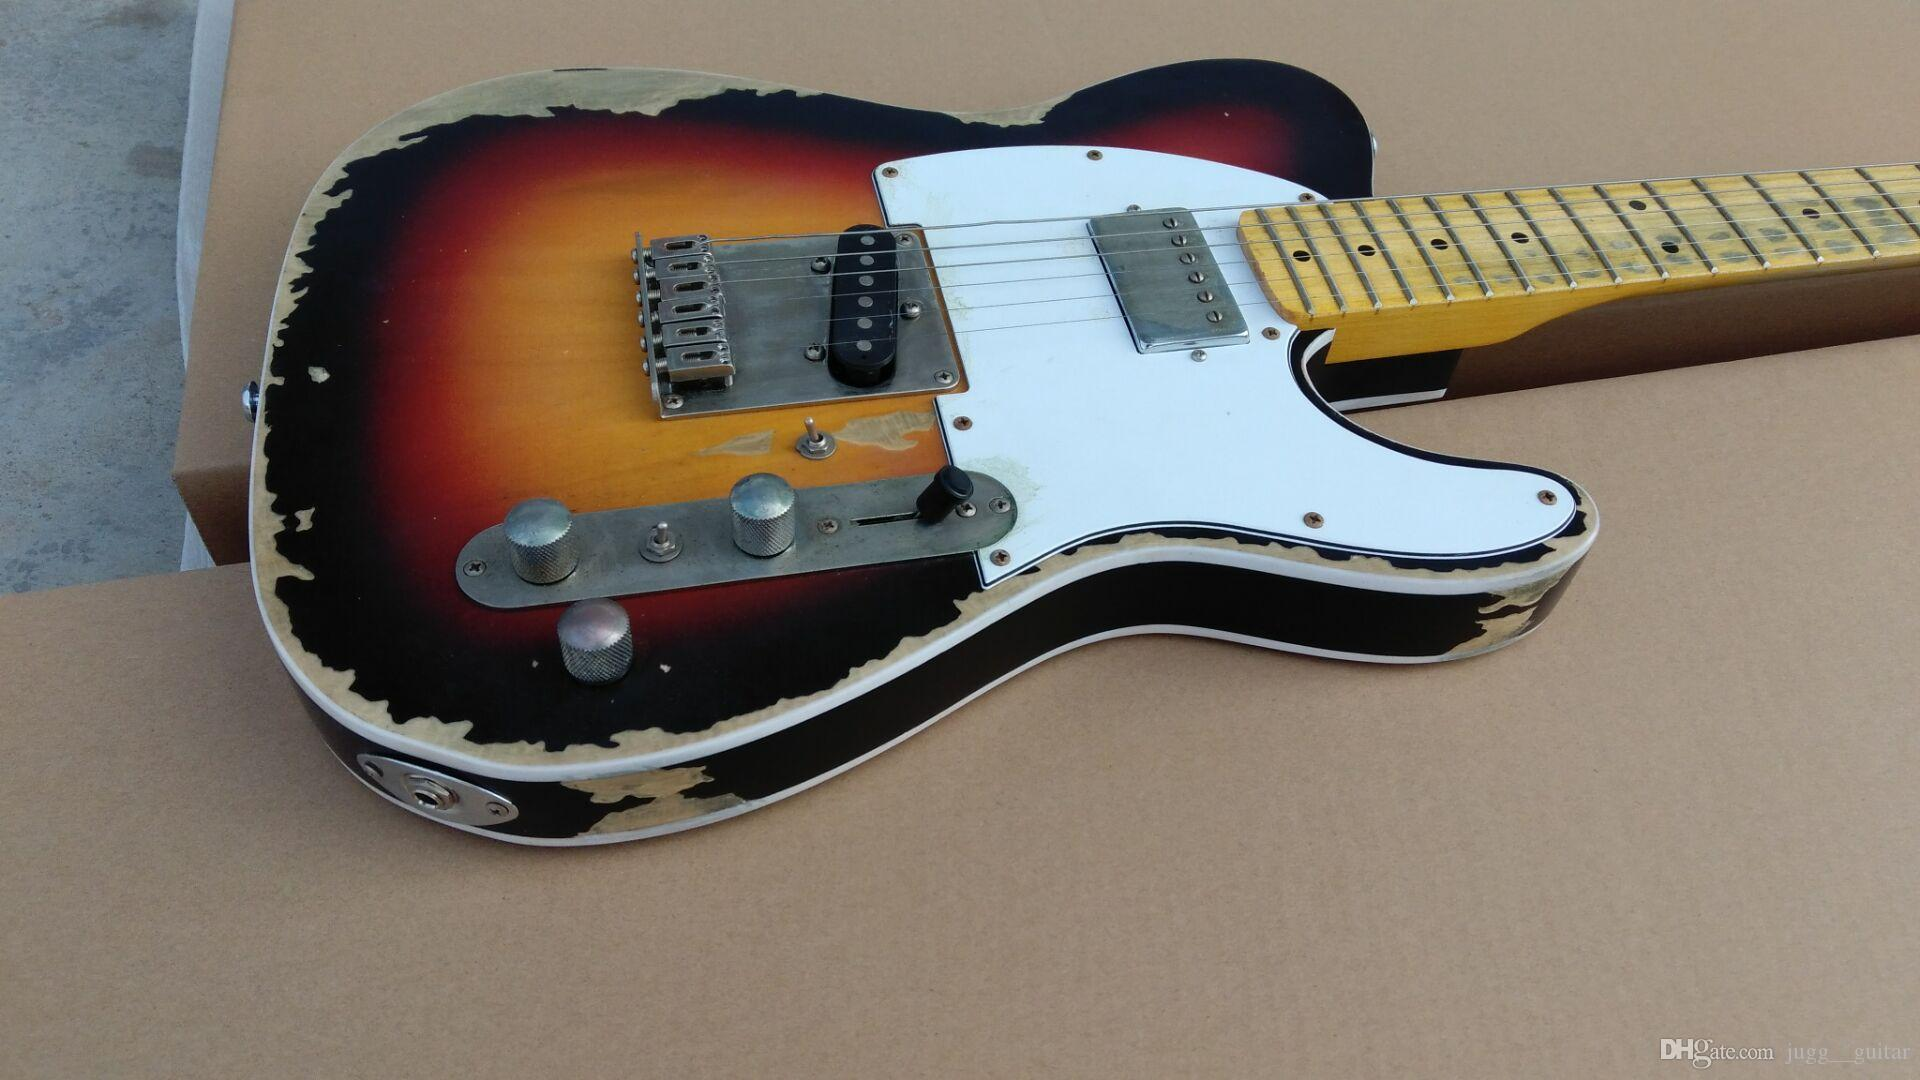 Negozio personalizzato MasterBuilt Guitar Andy Summers Heavy Relic 3 Tone Sunburst TL Guitars Electric Guitars invecchiato, Inlay Dot Black Dot, Sintonizzatori vintage